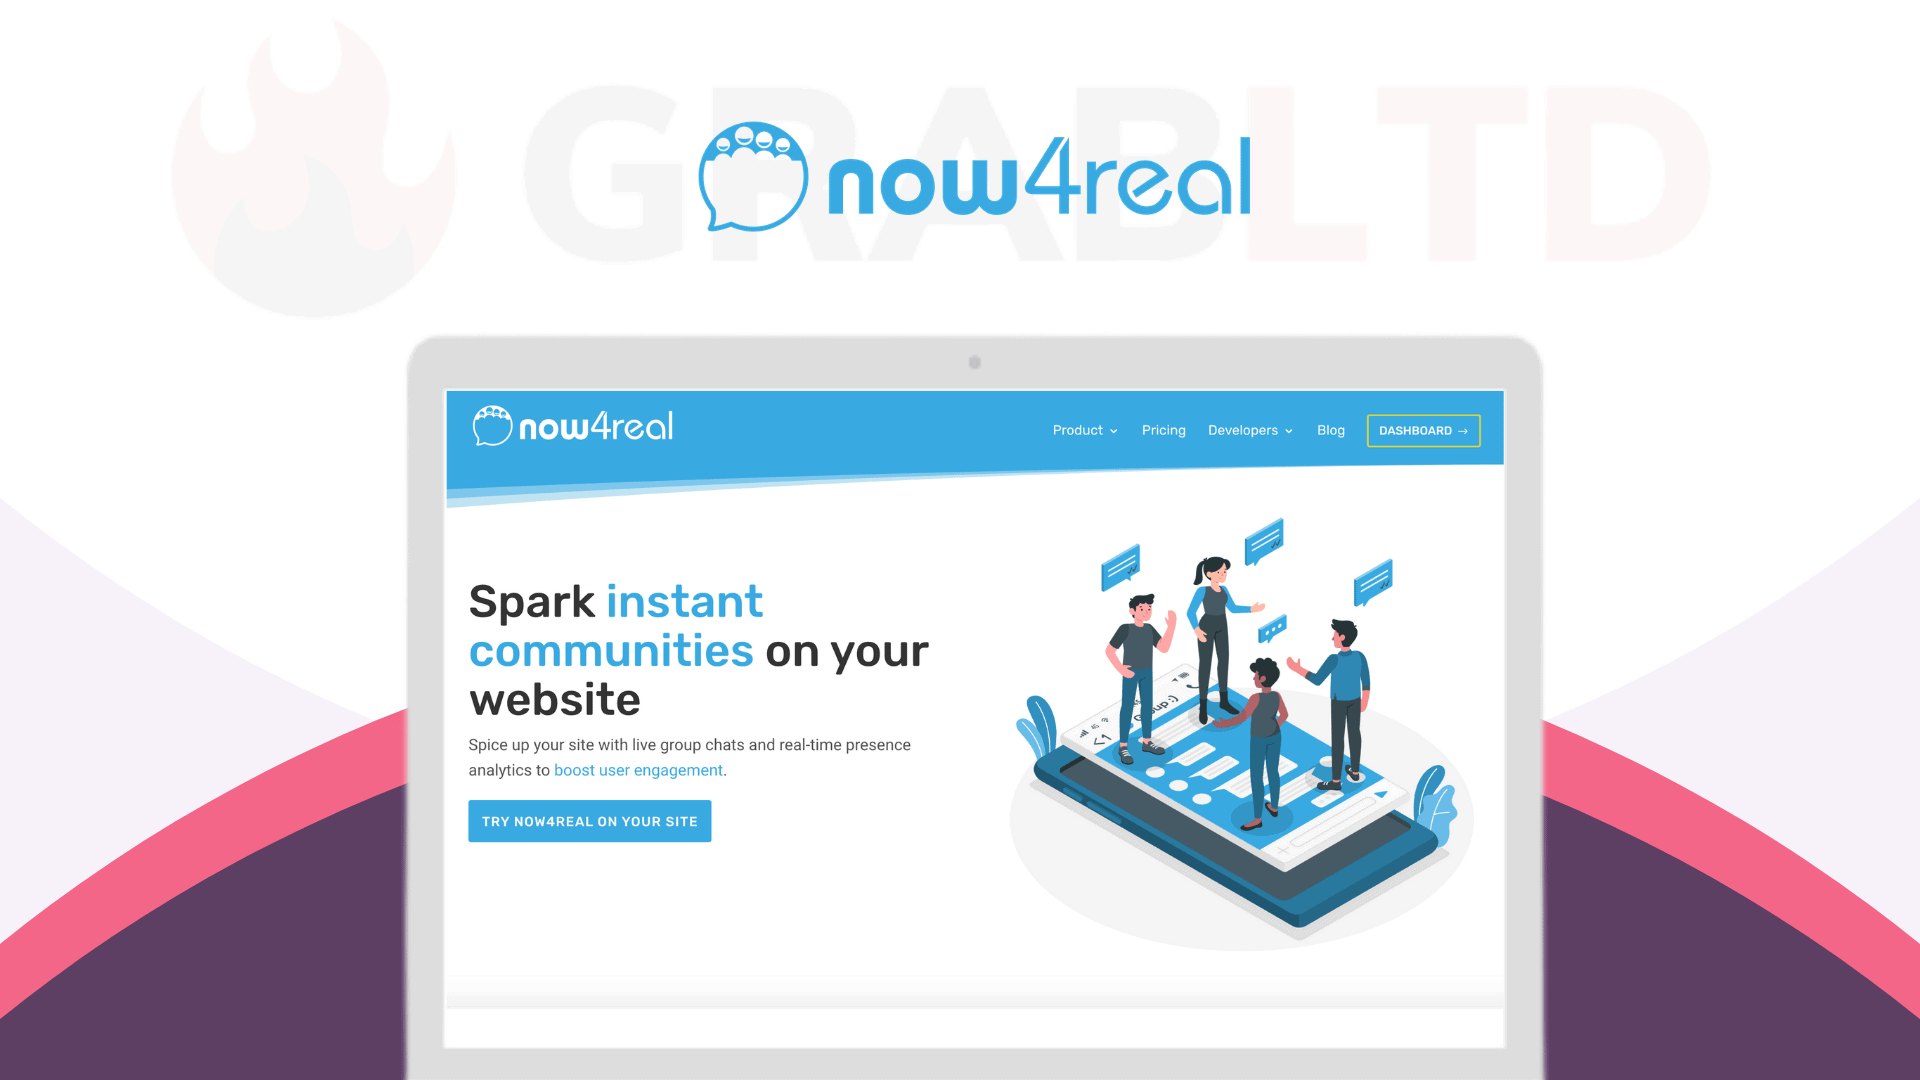 Now4real | Instant Communities On Your Website 1